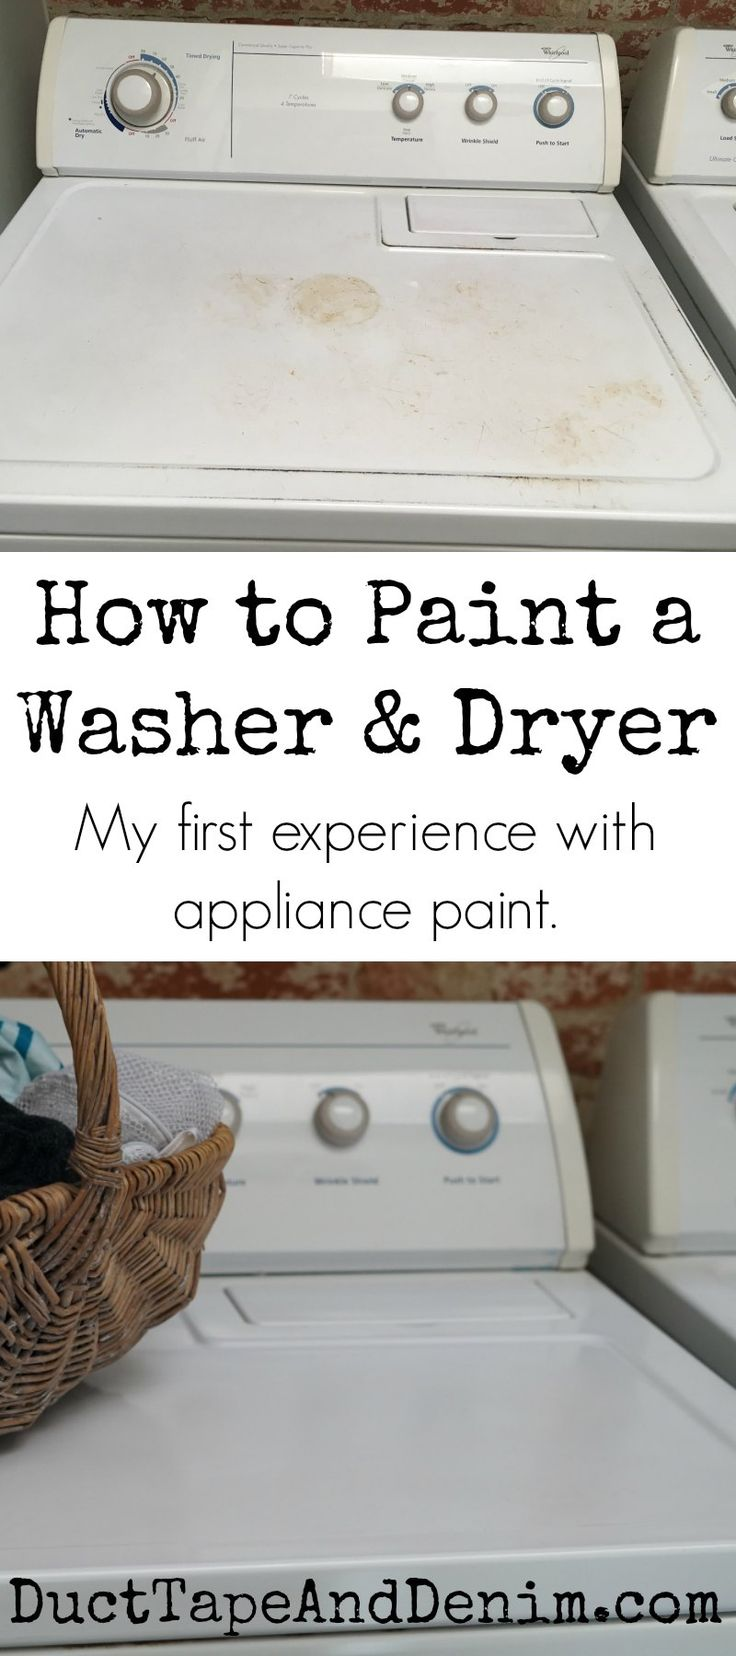 Biscuit colored washer and dryer - Can You Paint A Washing Machine And Dryer My First Experience With Appliance Paint